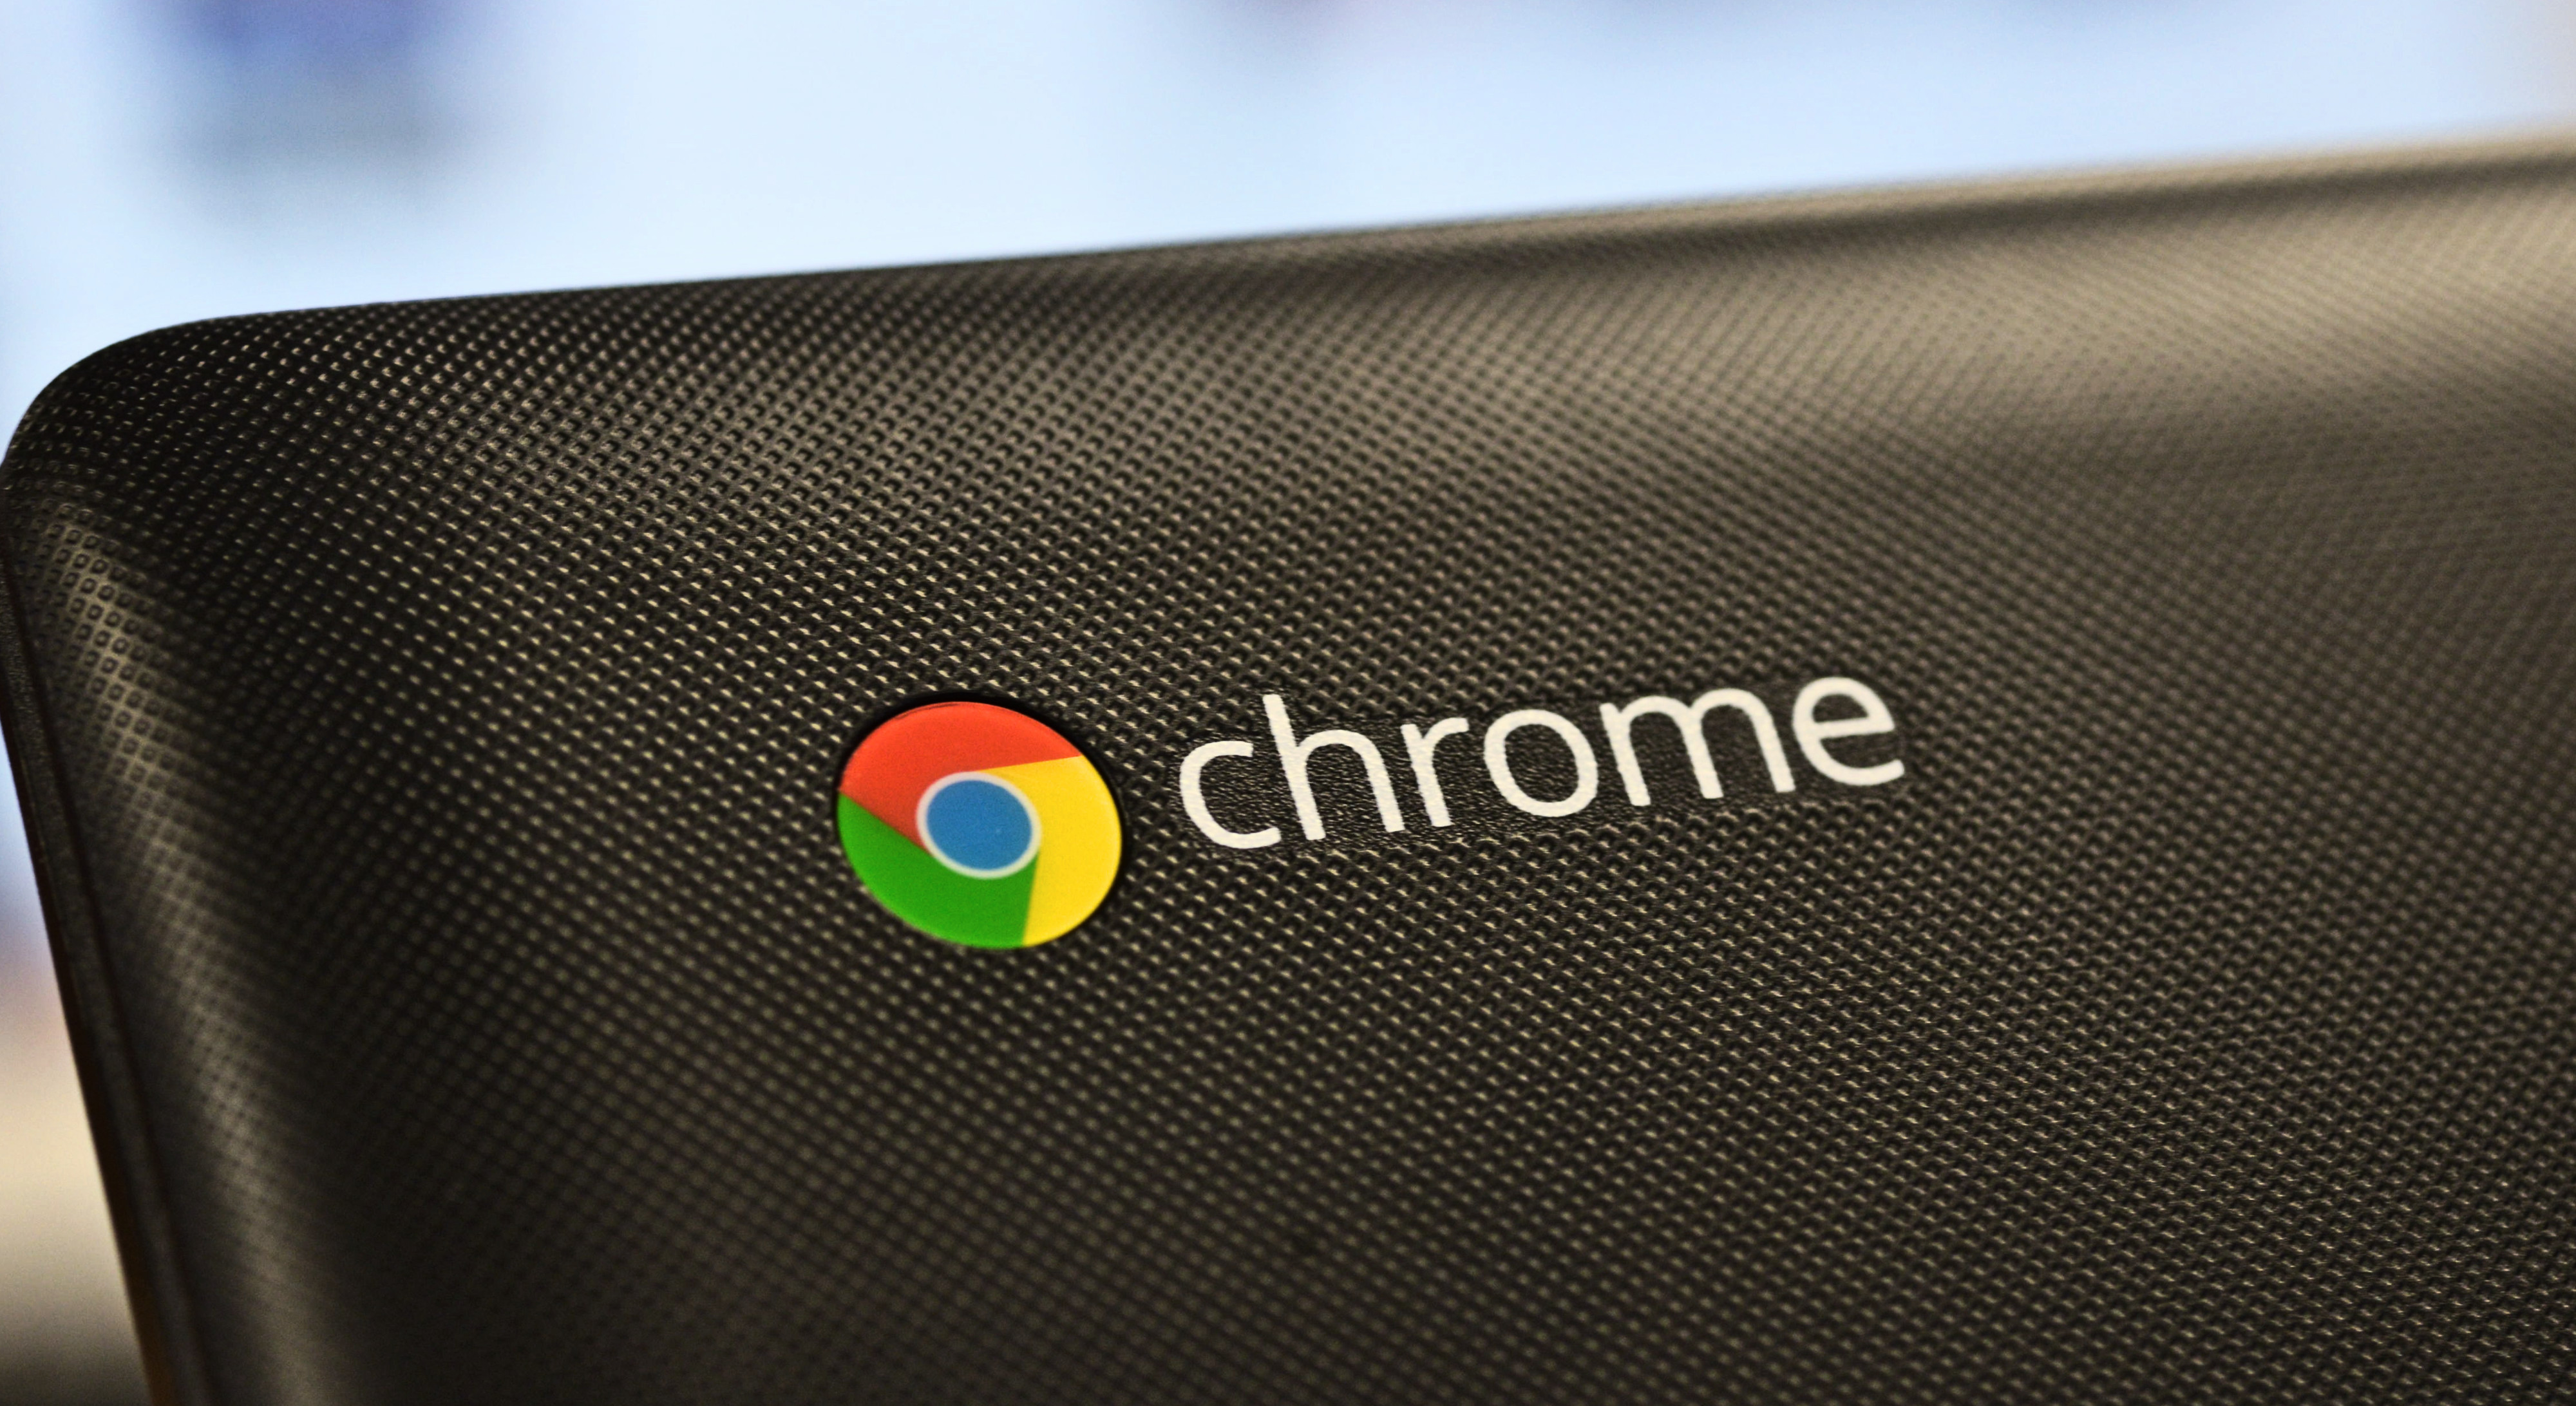 Is a google chromebook good for college?